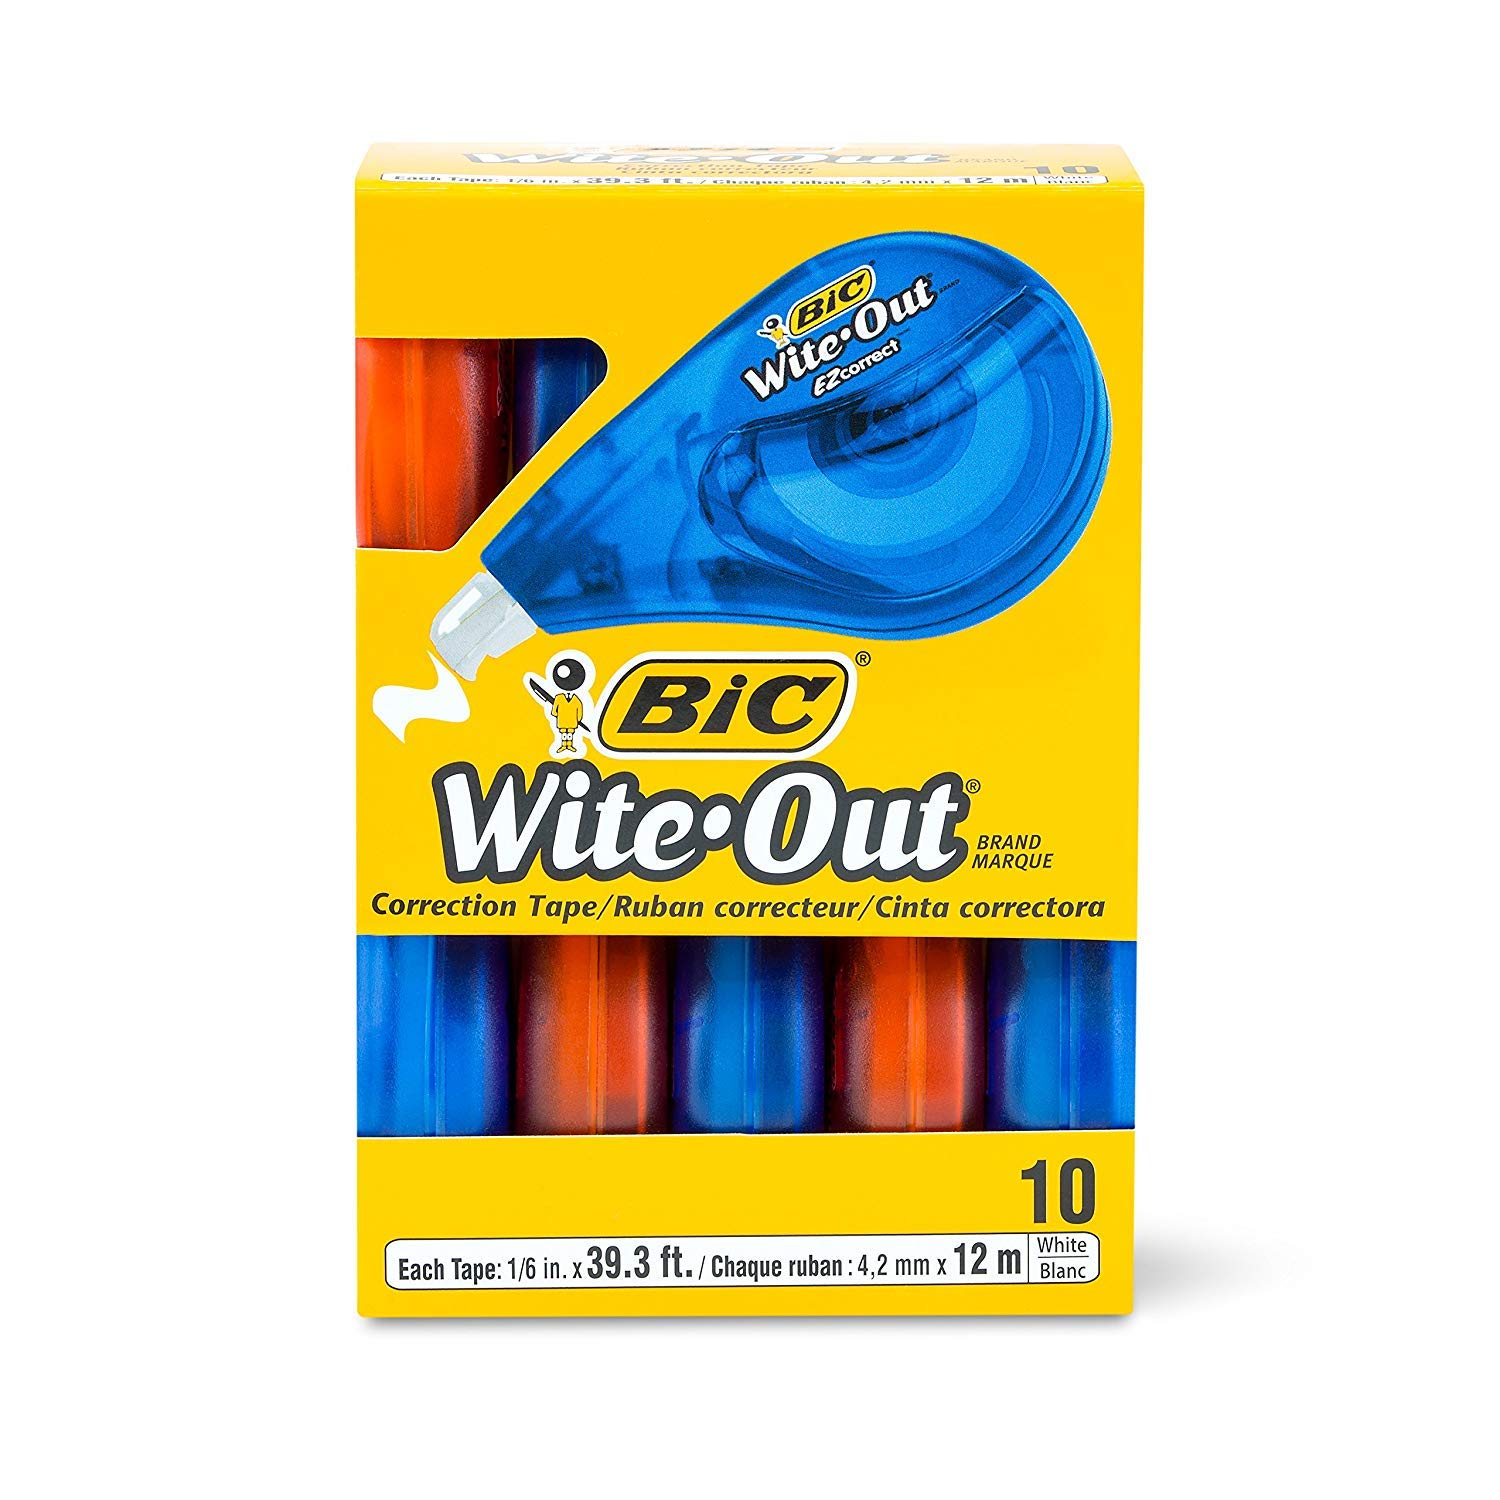 BIC Wite-Out Brand EZ Correct Correction Tape, White, 10-Count (4 Sets(10 Count))